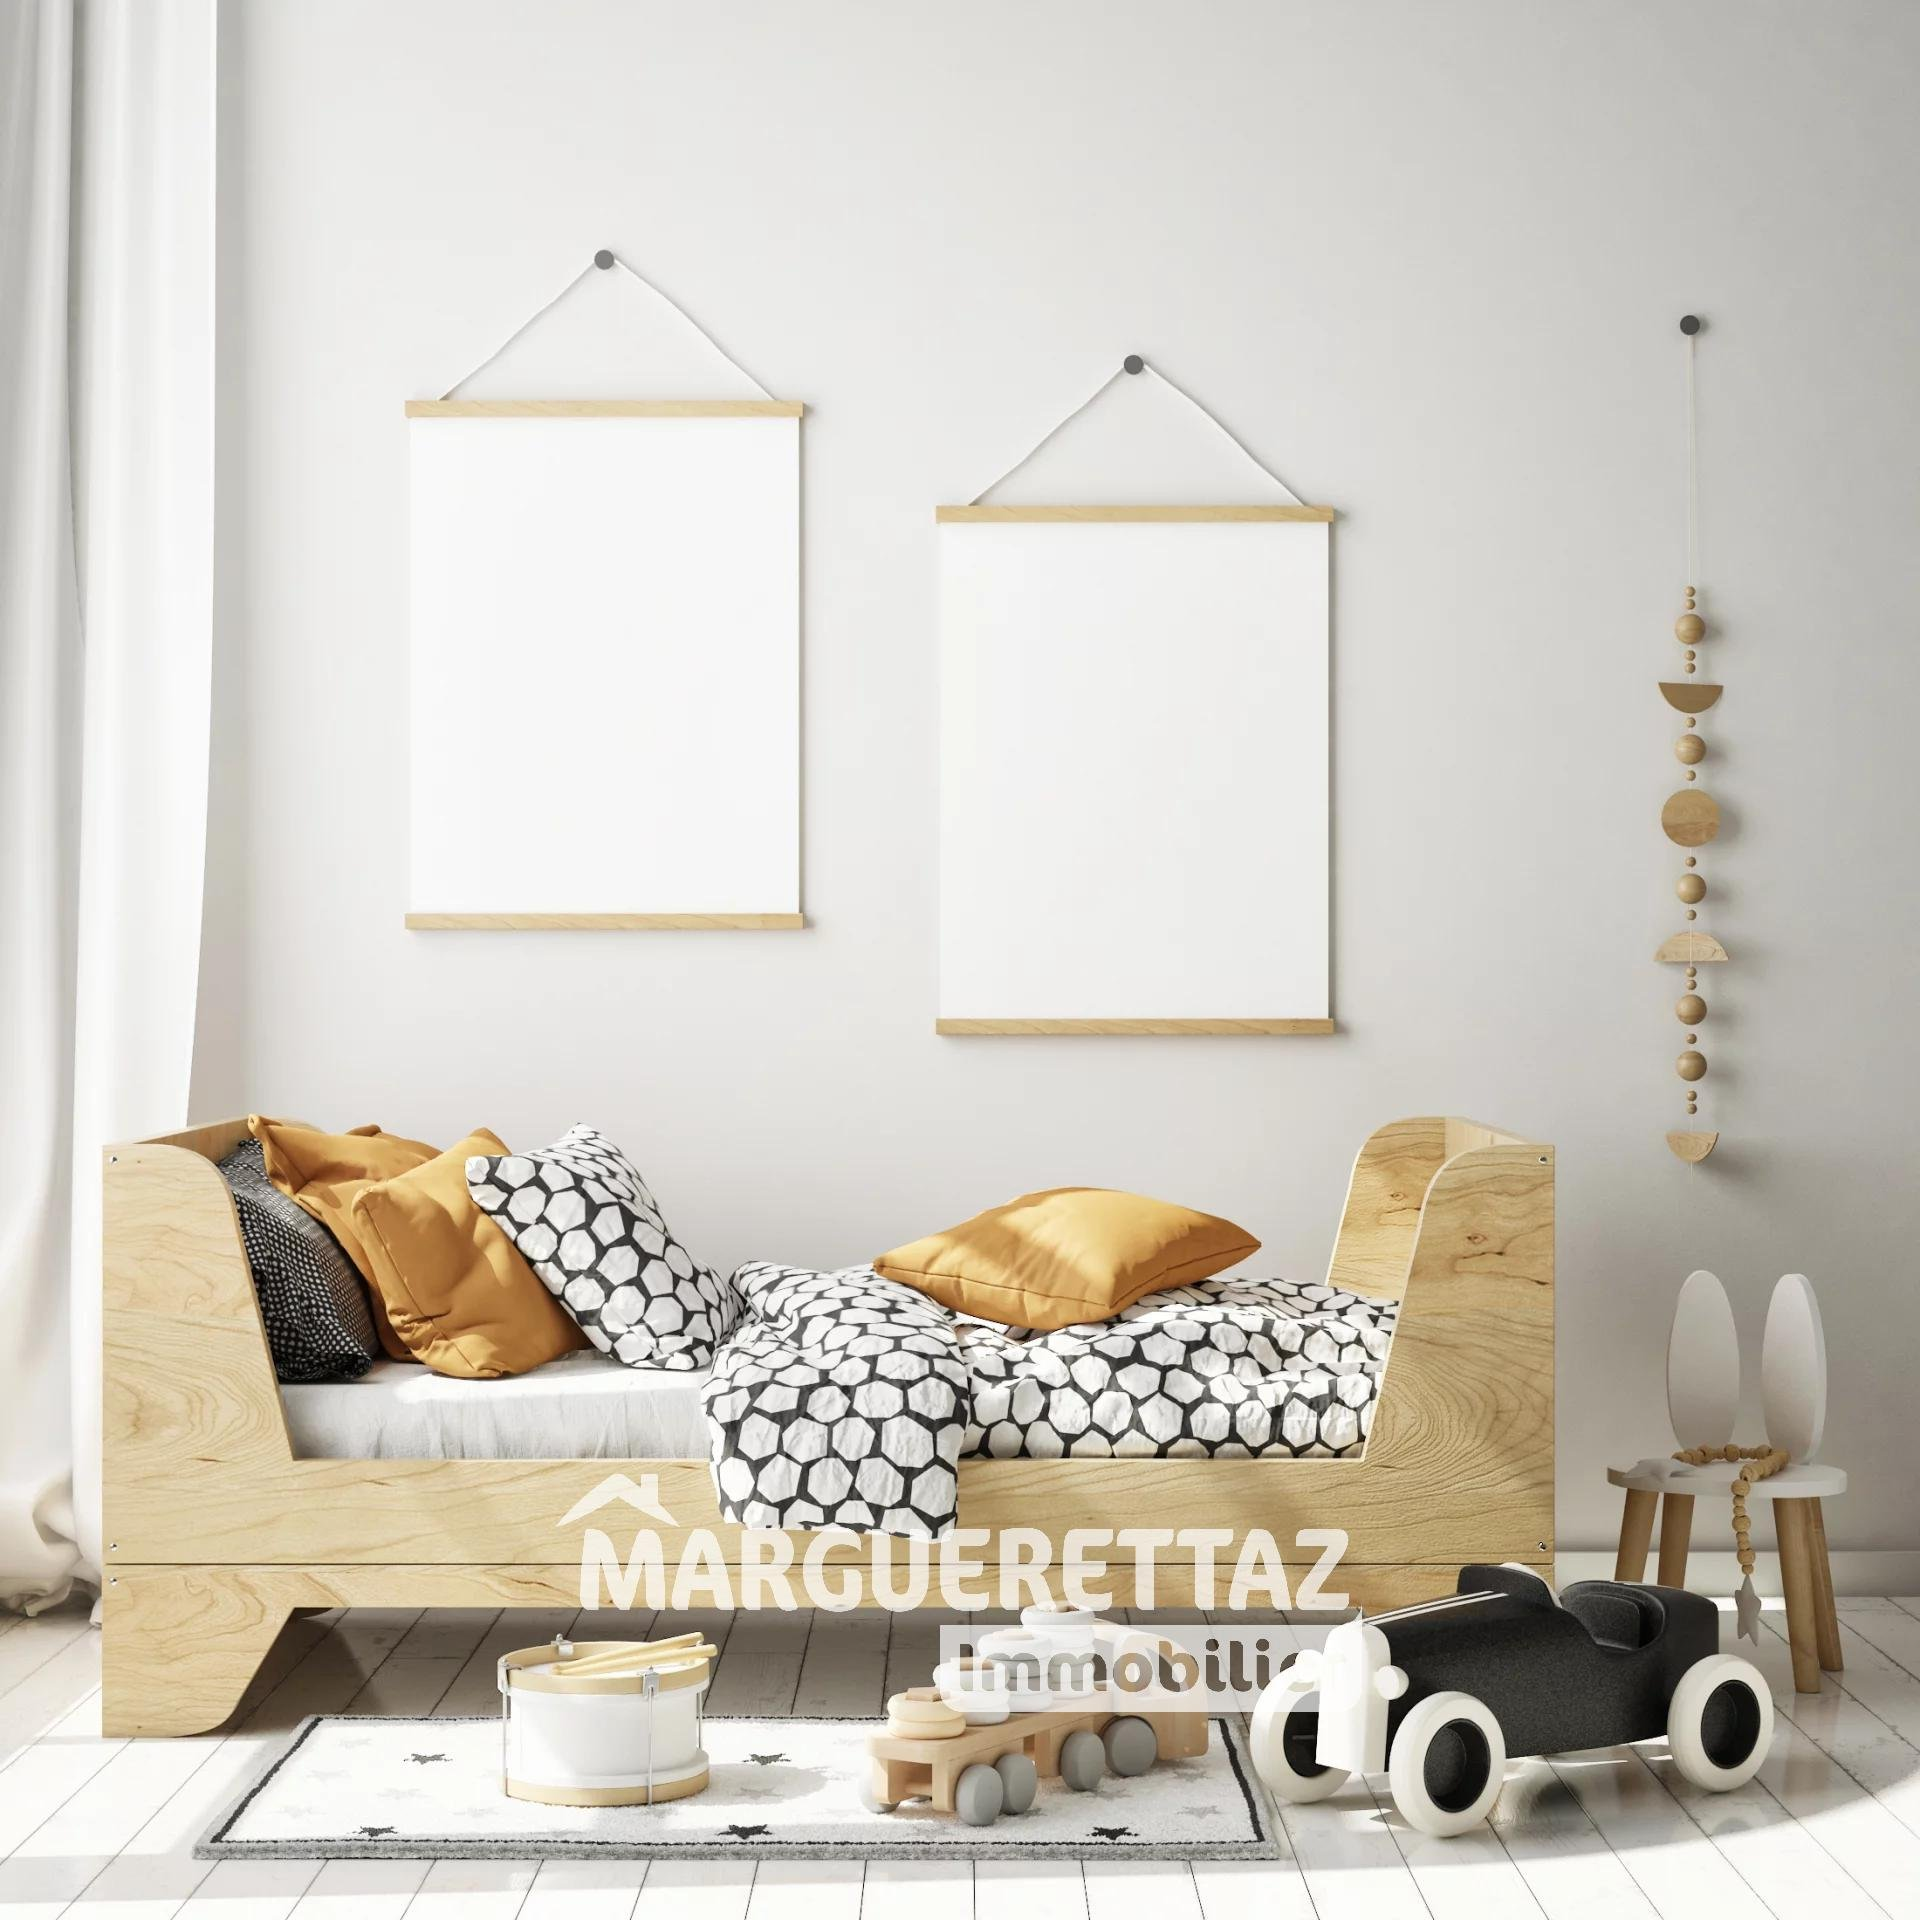 interior room bedroom bed hotel home furniture sofa lamp design house luxury table comfortable living pillow living room decor white apartment wall architecture indoors window chair 3d art baby black